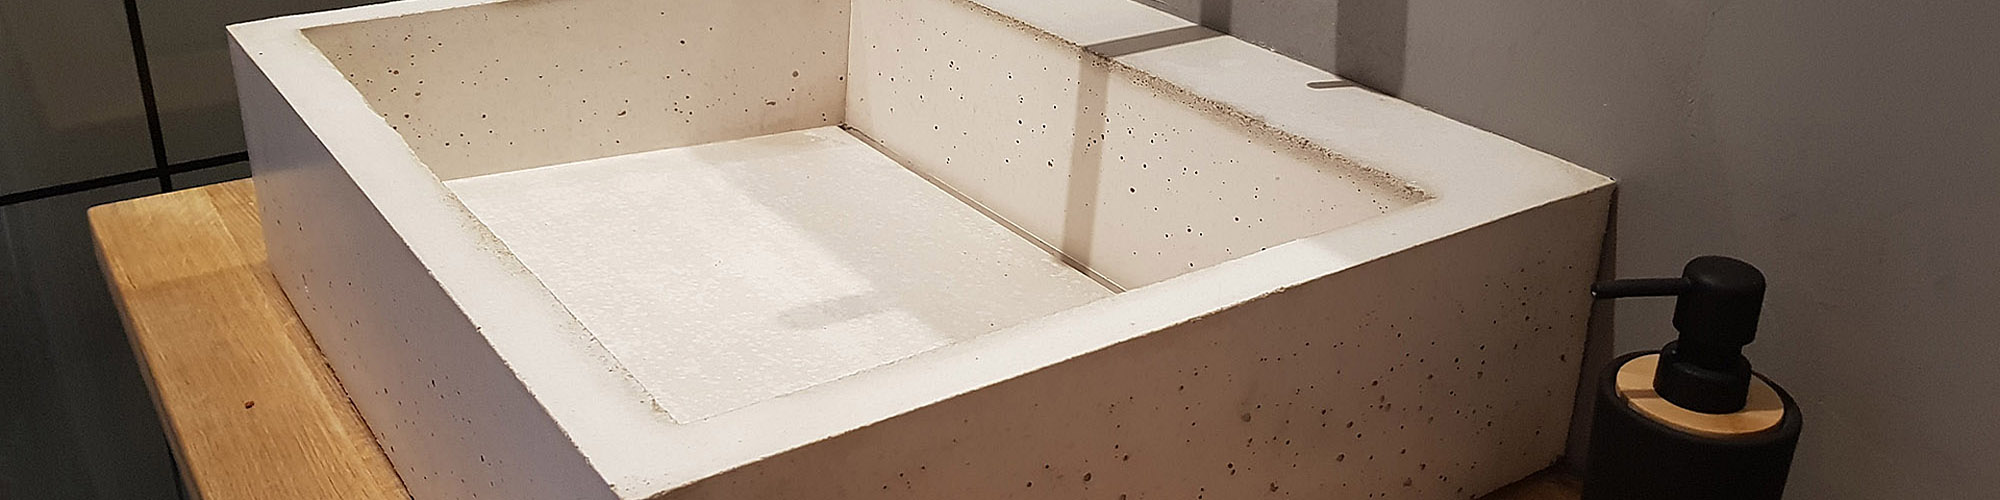 concrete-sink.eu